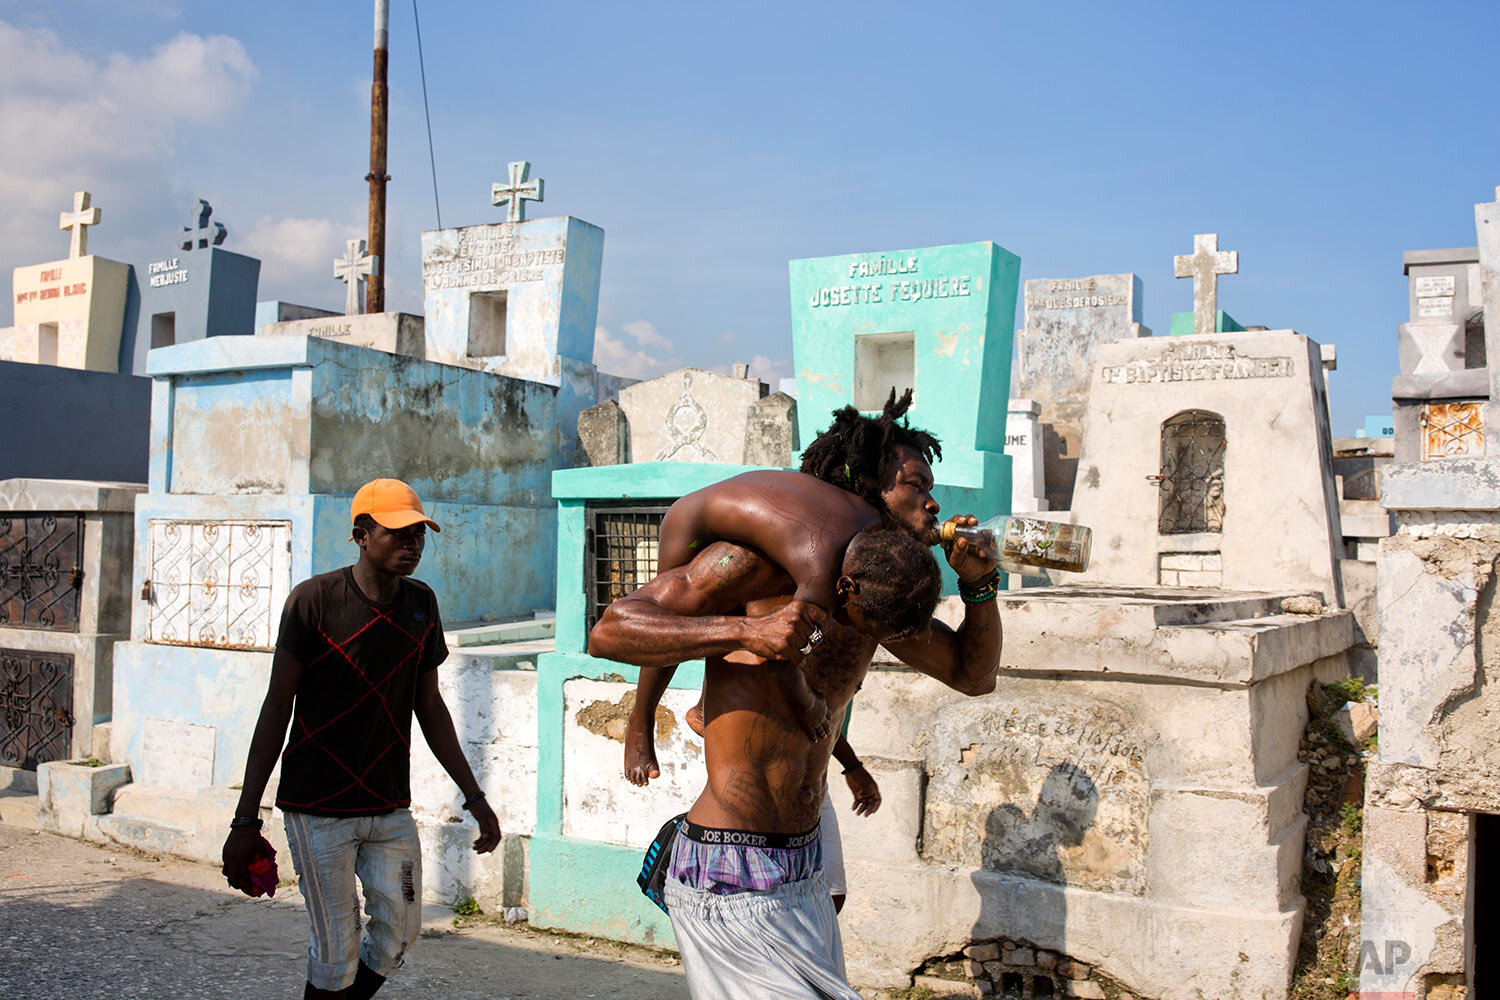 A voodoo priest claiming to be possessed with a Gede spirit carries a sick girl for treatment during the annual Voodoo festival of Fete Gede in Port-au-Prince, Haiti, Friday, Nov. 1, 2019. (AP Photo/Dieu Nalio Chery)